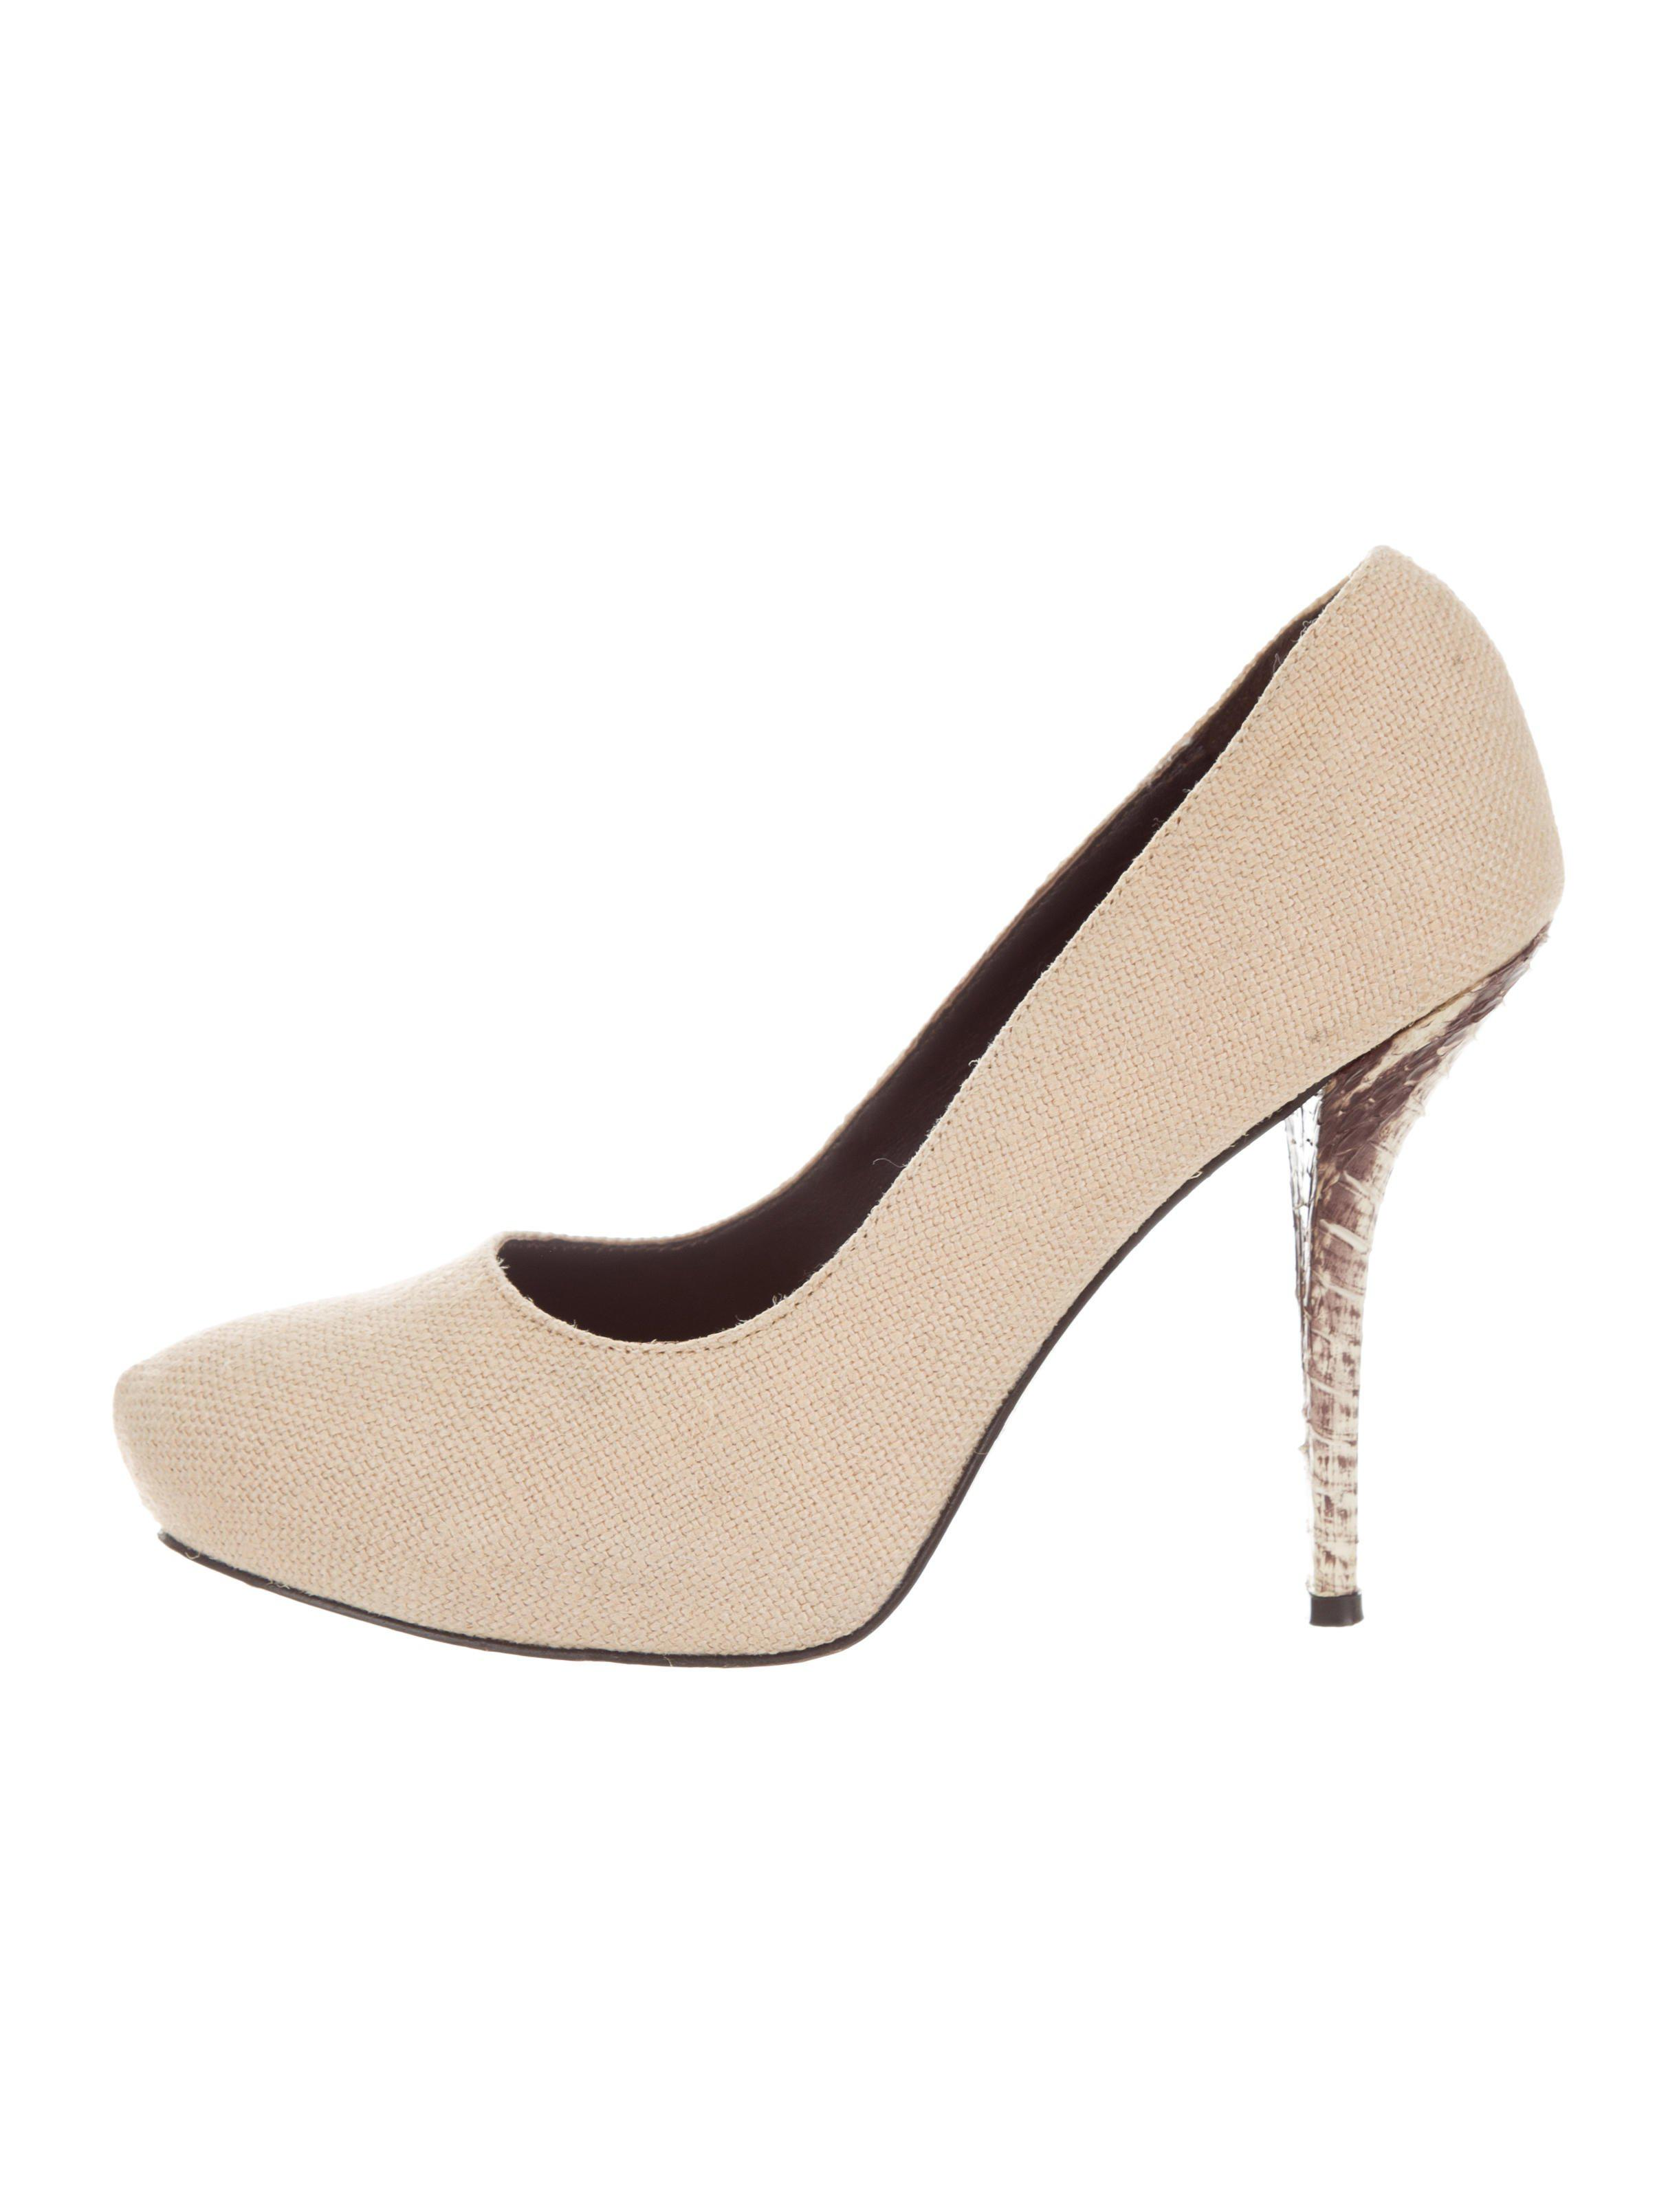 5935c55534a2 Lyst - Elizabeth And James Canvas Round-toe Pumps Beige in Natural